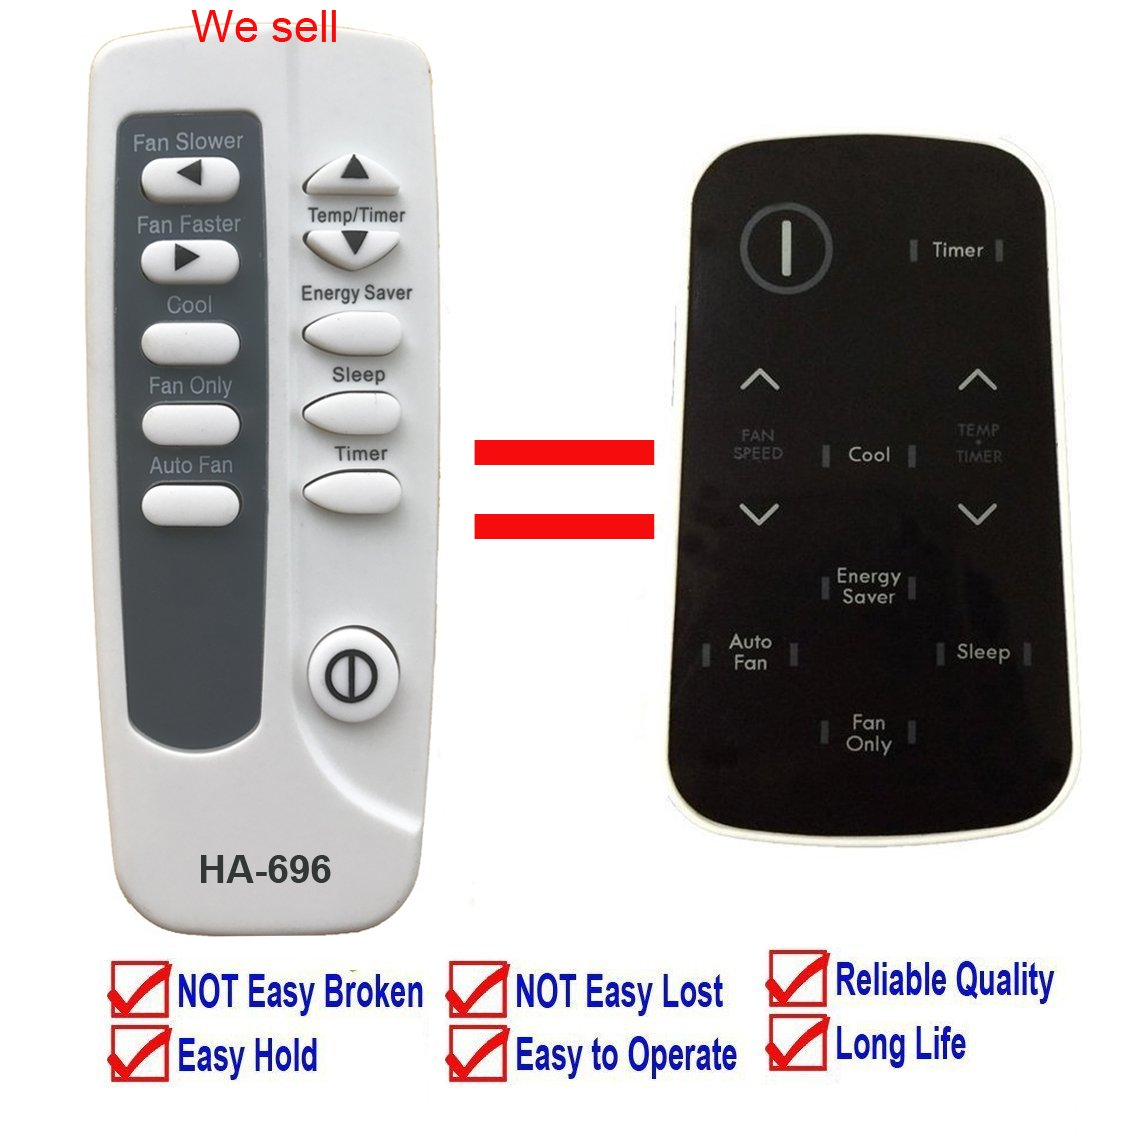 Replacement for Kenmore Air Conditioner Remote Control 5304504692 for Model 253.77060510 253.77060511 253.77060513 253.77080510 253.77080511 253.77080512 253.77080516 253.77080517 253.77110510